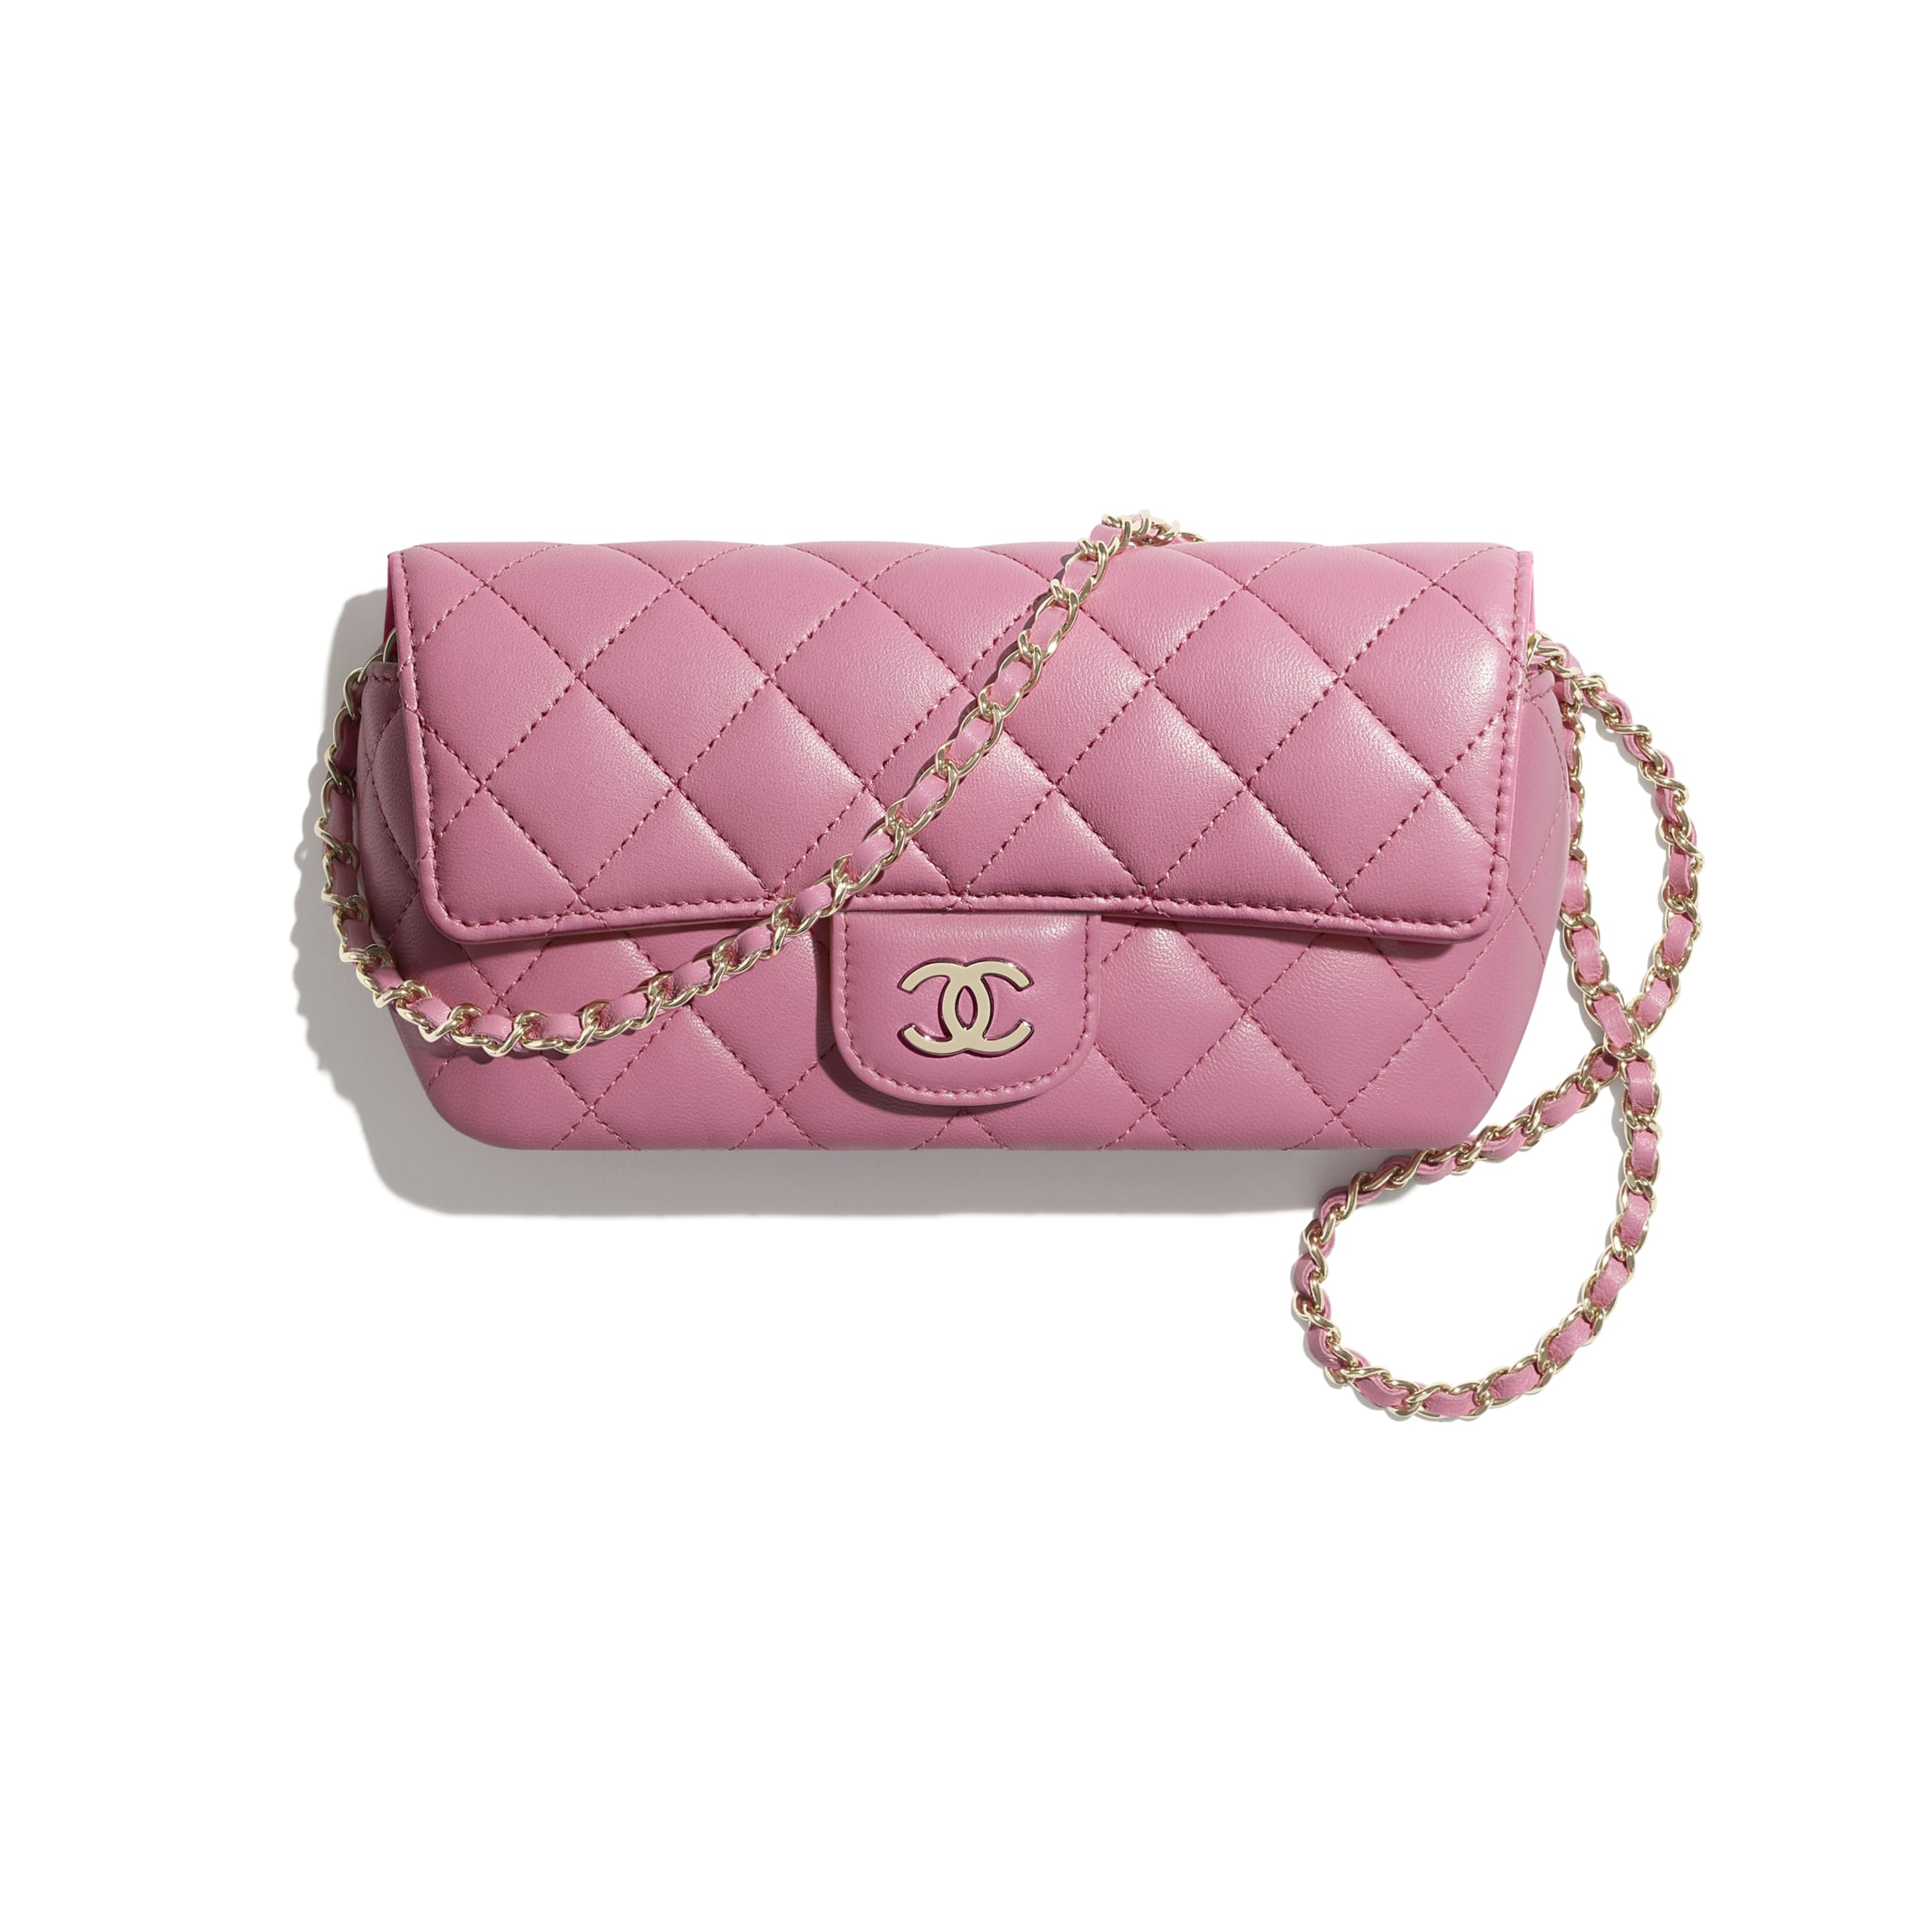 Glasses Case with Classic Chain - Pink - Lambskin - CHANEL - Default view - see standard sized version